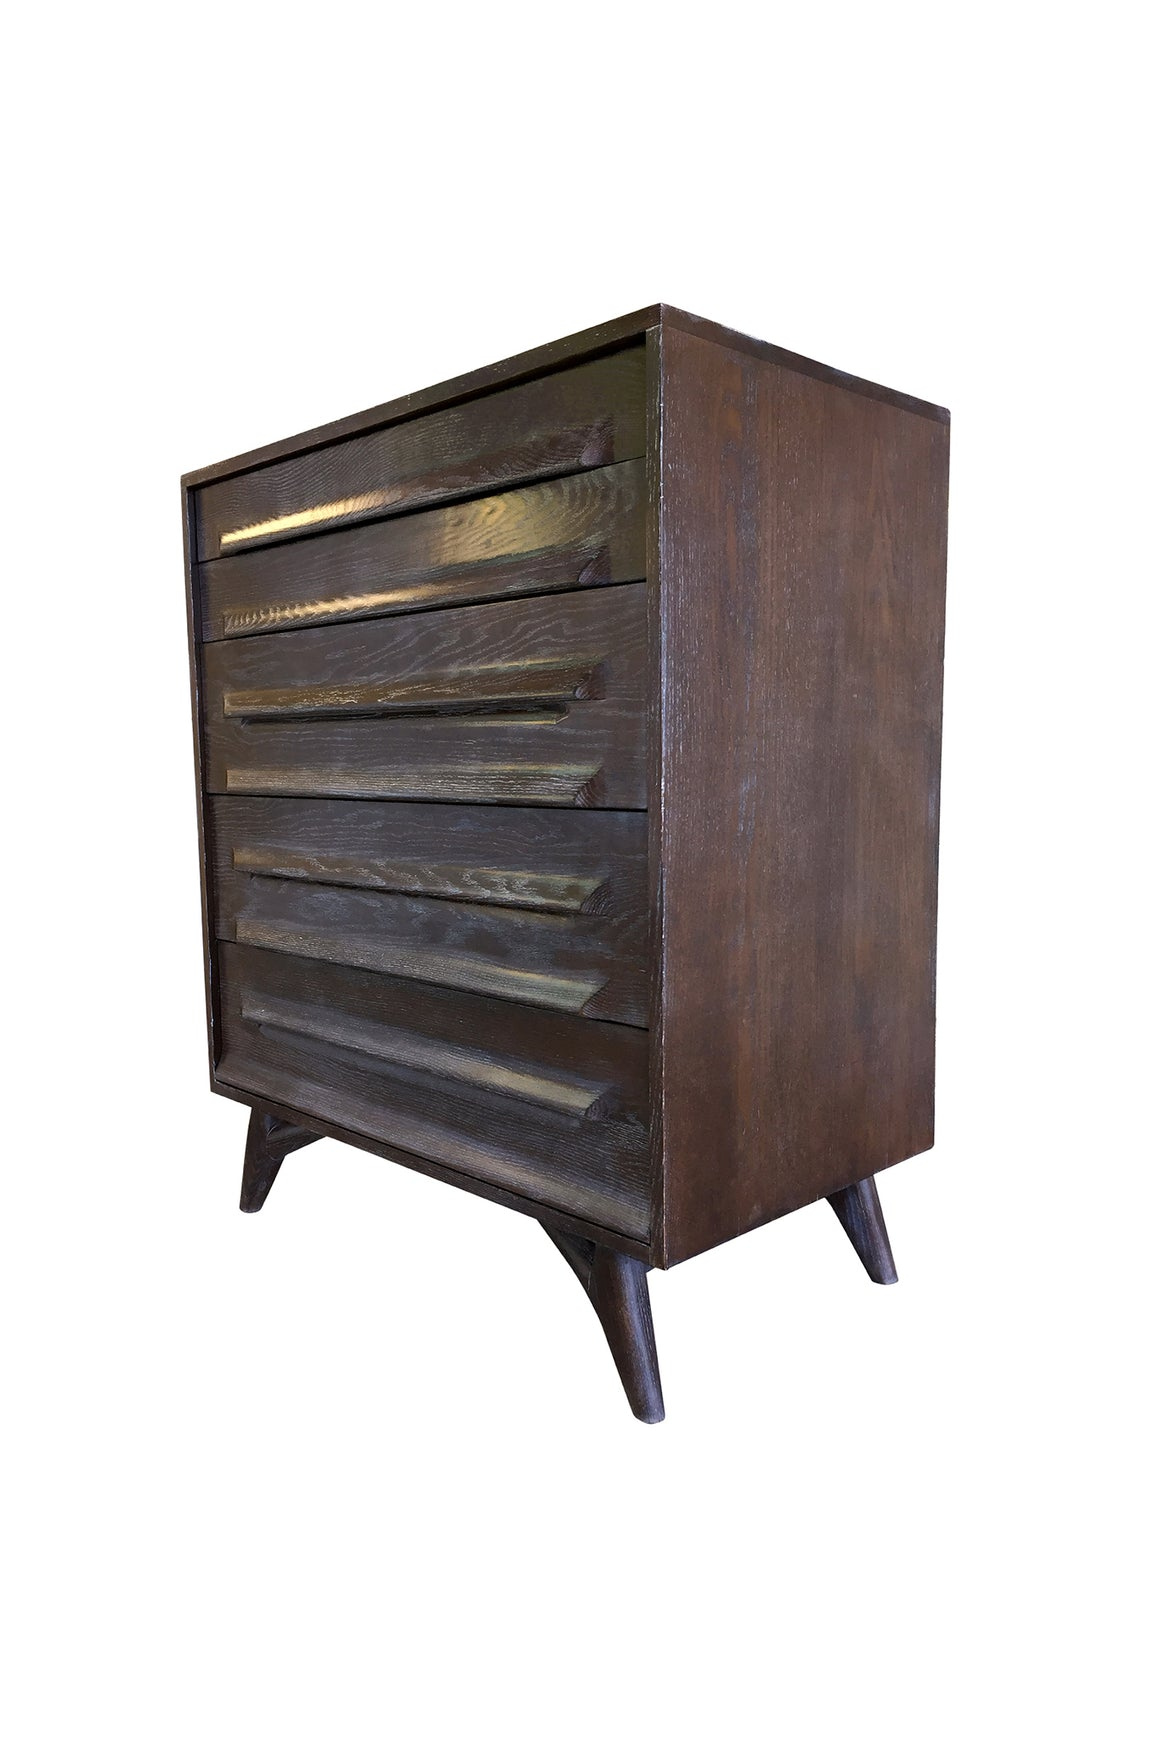 1950s Cerused Oak Chest of Drawers by Jack Van Der Molen for Vanleigh Furniture